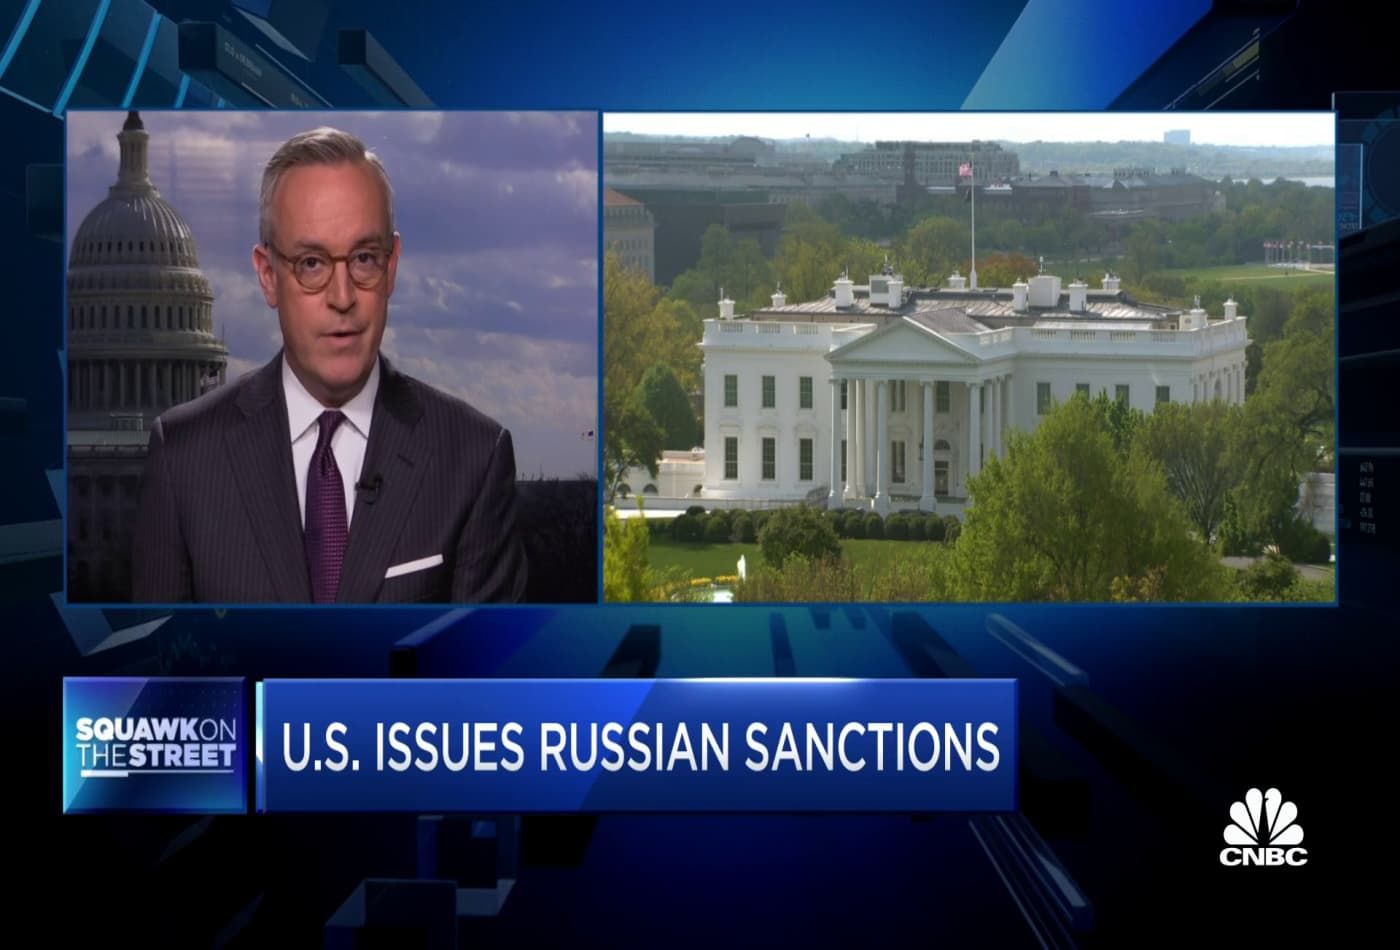 What to know about the U.S. sanctions against Russia